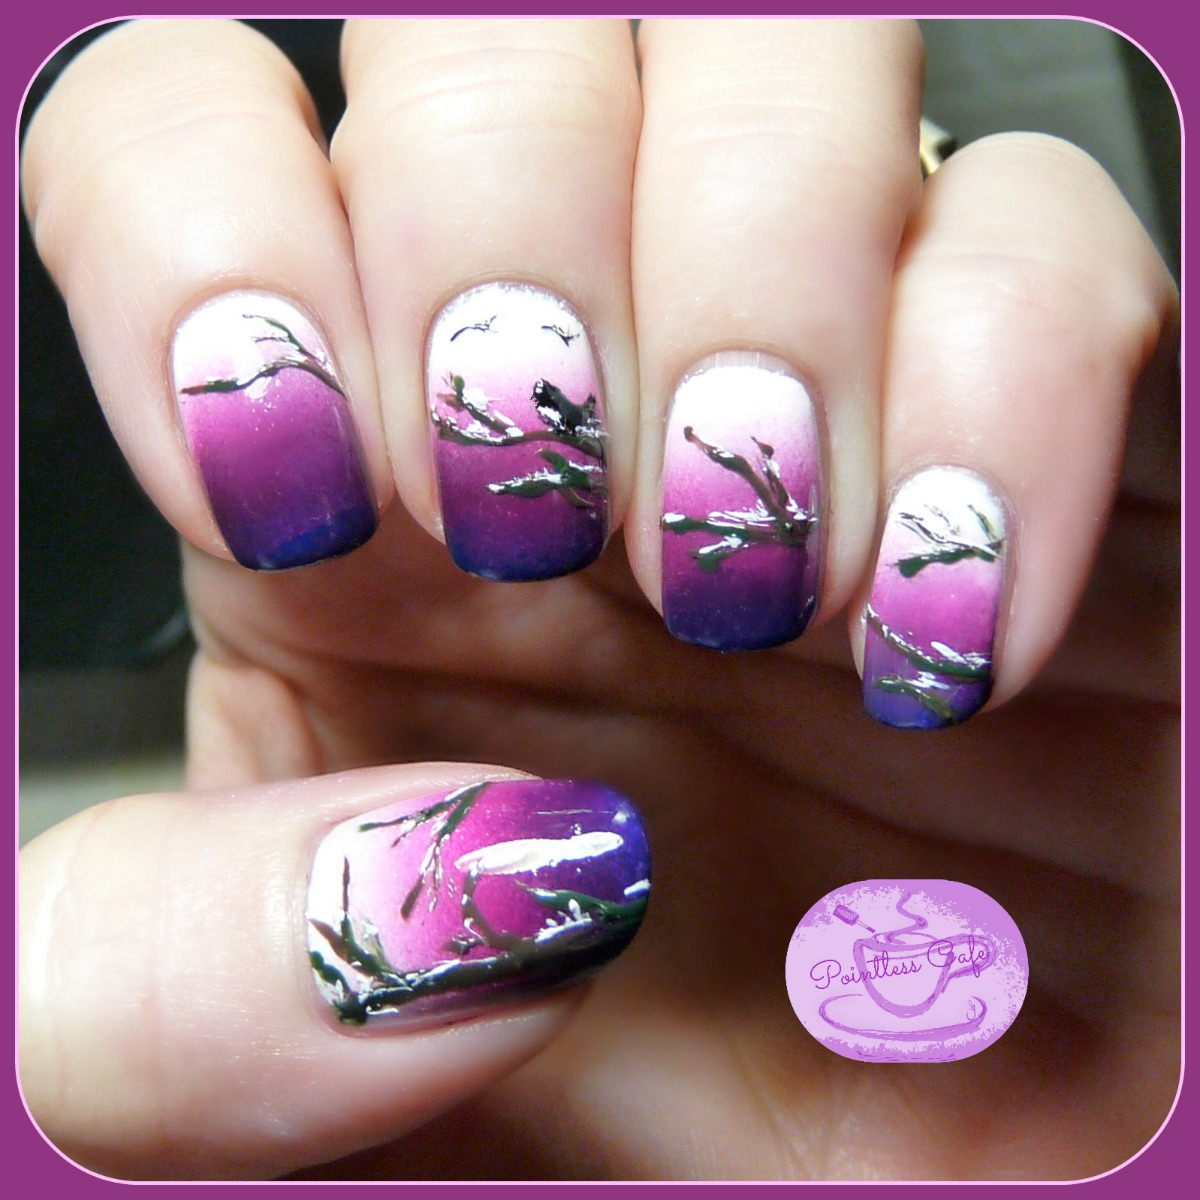 Nail art 2014 my top 10 and top 5 nail artists who inspired me looking forward to more in 2015 prinsesfo Gallery